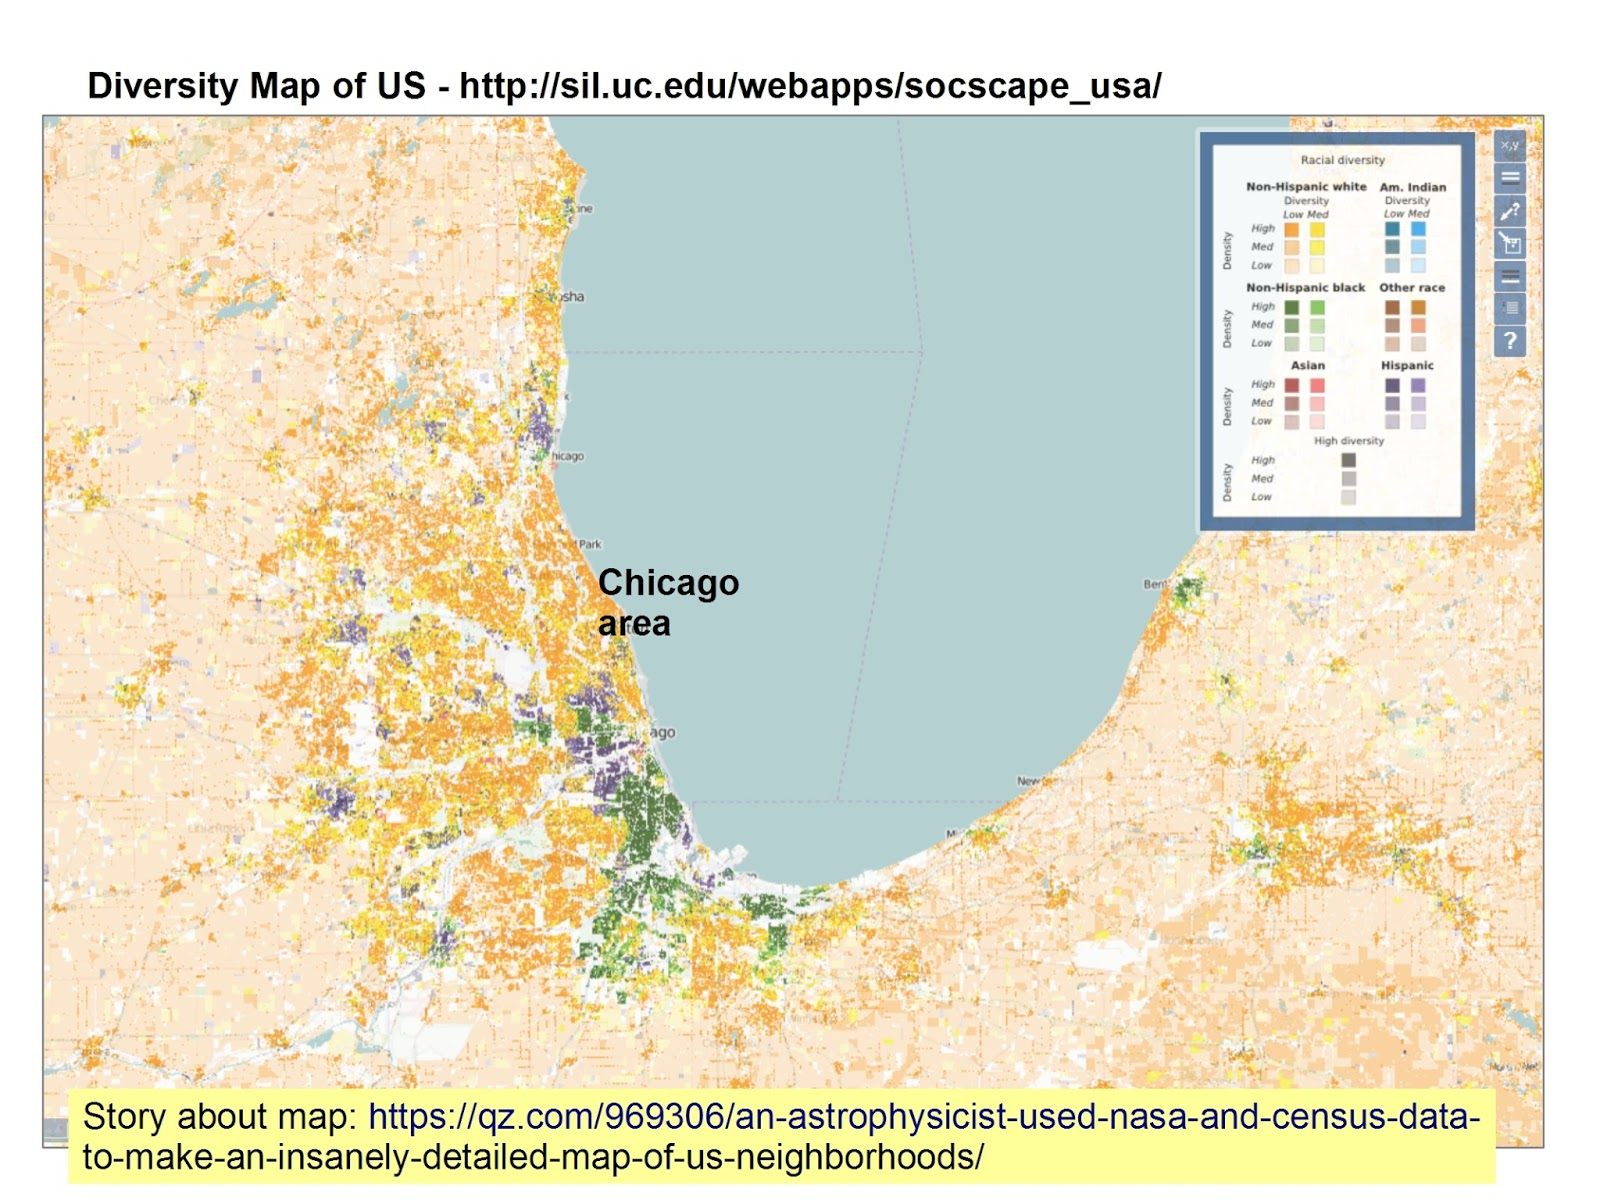 this is screenshot showing chicago area which i created using the interactive diversity map found at this site this article describes how the map was